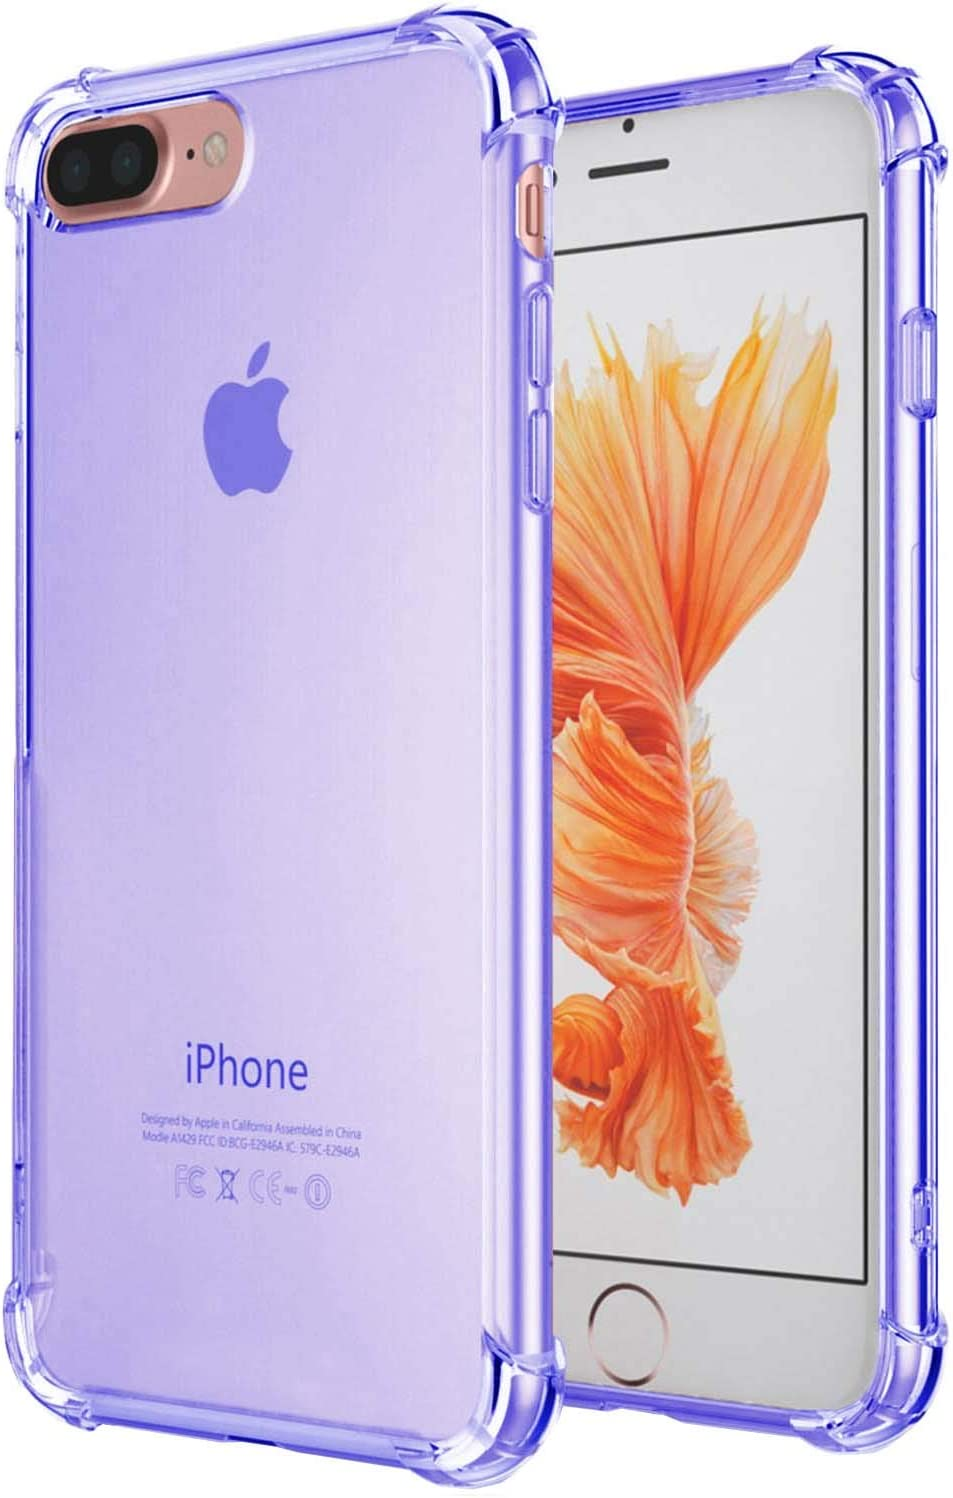 Compatible with iPhone 8 Plus Case, iPhone 7 Plus Case, iEugen Crystal Clear Shock Absorption Technology Bumper Soft TPU Cover Case for iPhone 7 Plus/iPhone 8 Plus (2017) - Clear (Blue)